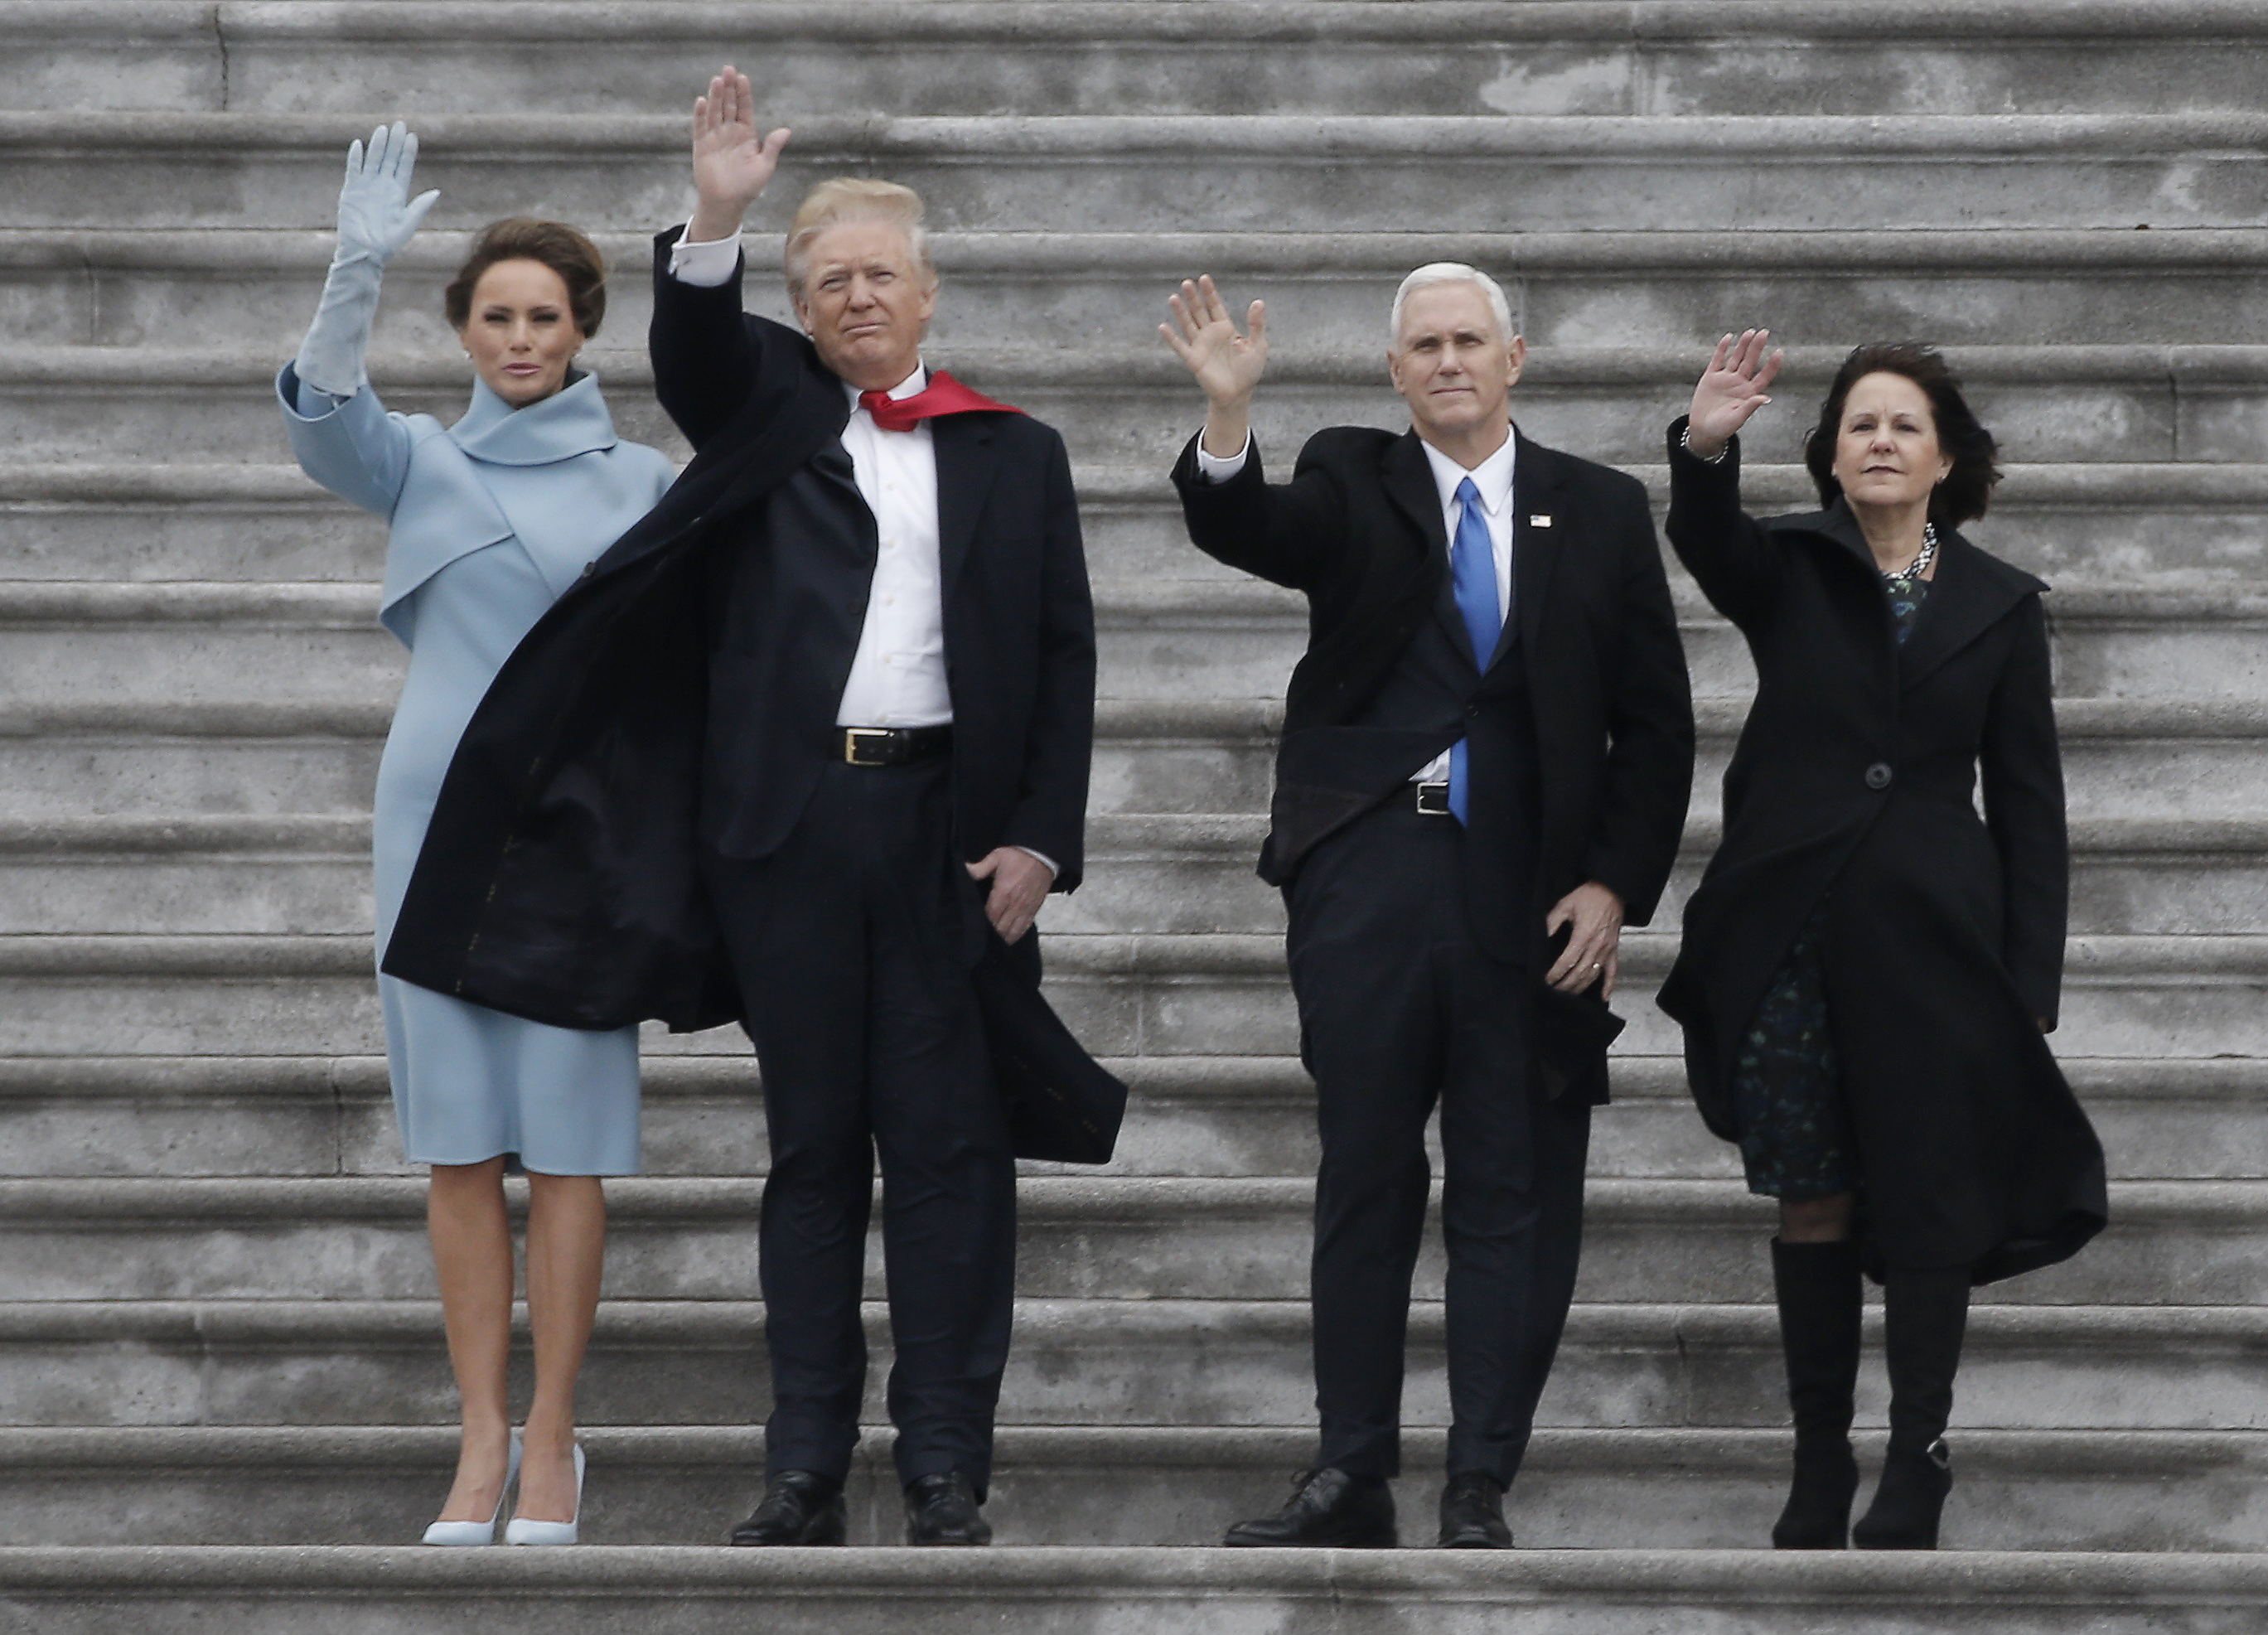 President Donald Trump, Melania Trump (L), Vice President Mike Pence and Karen Pence (R) wave as the Executive One helicopter departs carrying outgoing President Barack Obama and outgoing First Lady Michelle Obama following Trump's swearing ceremony in Washington, U.S., January 20, 2017. REUTERS/Mike Segar